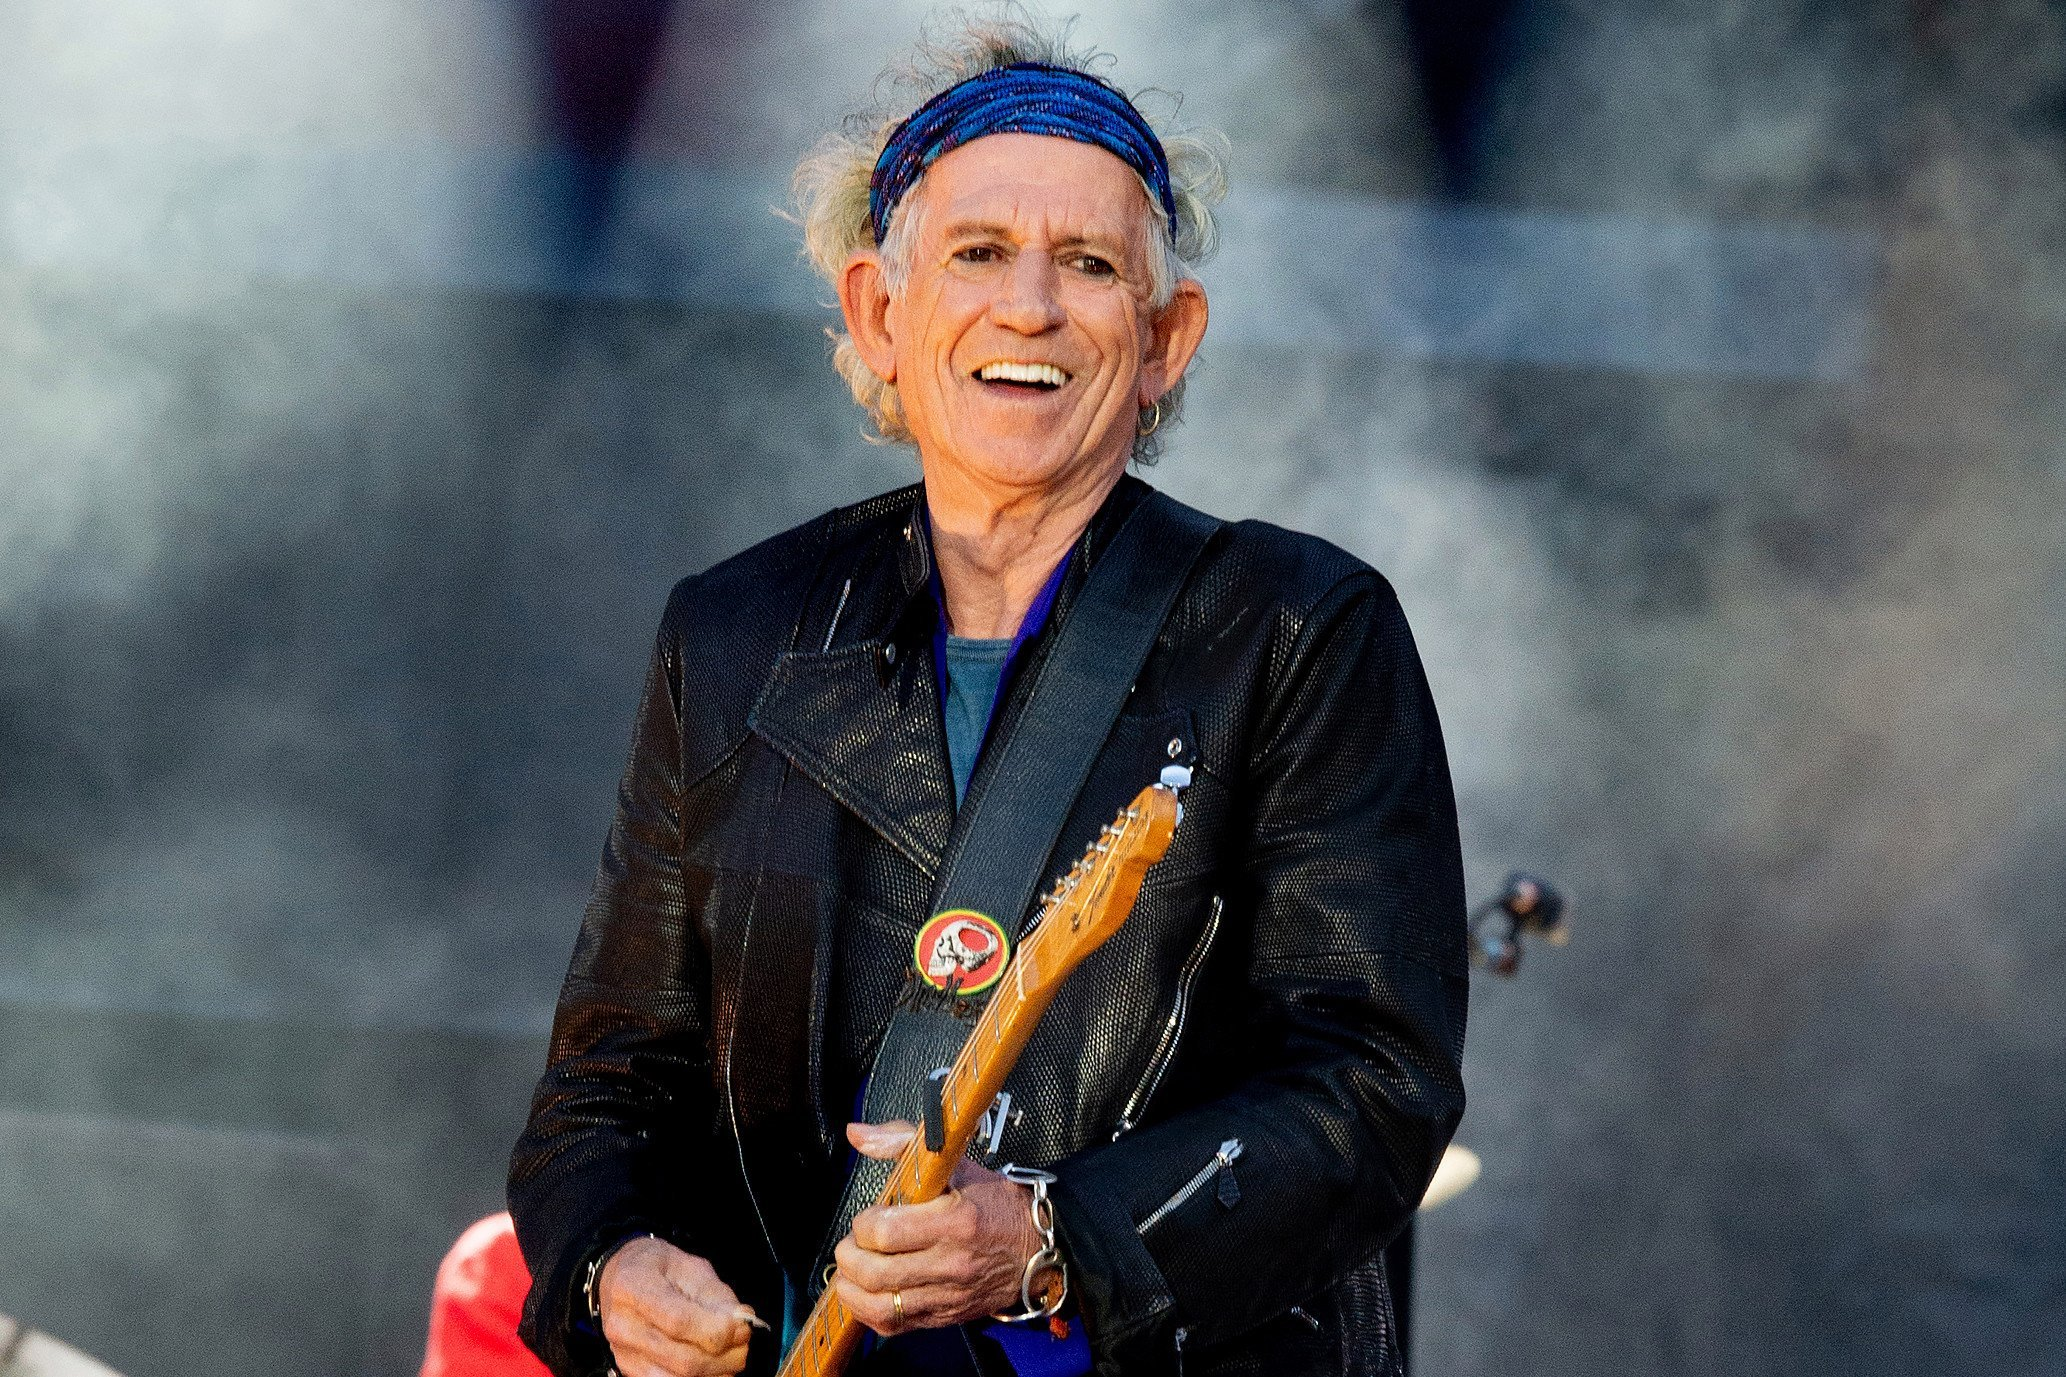 Keith Richards finally 'pulled the plug' on his drinking